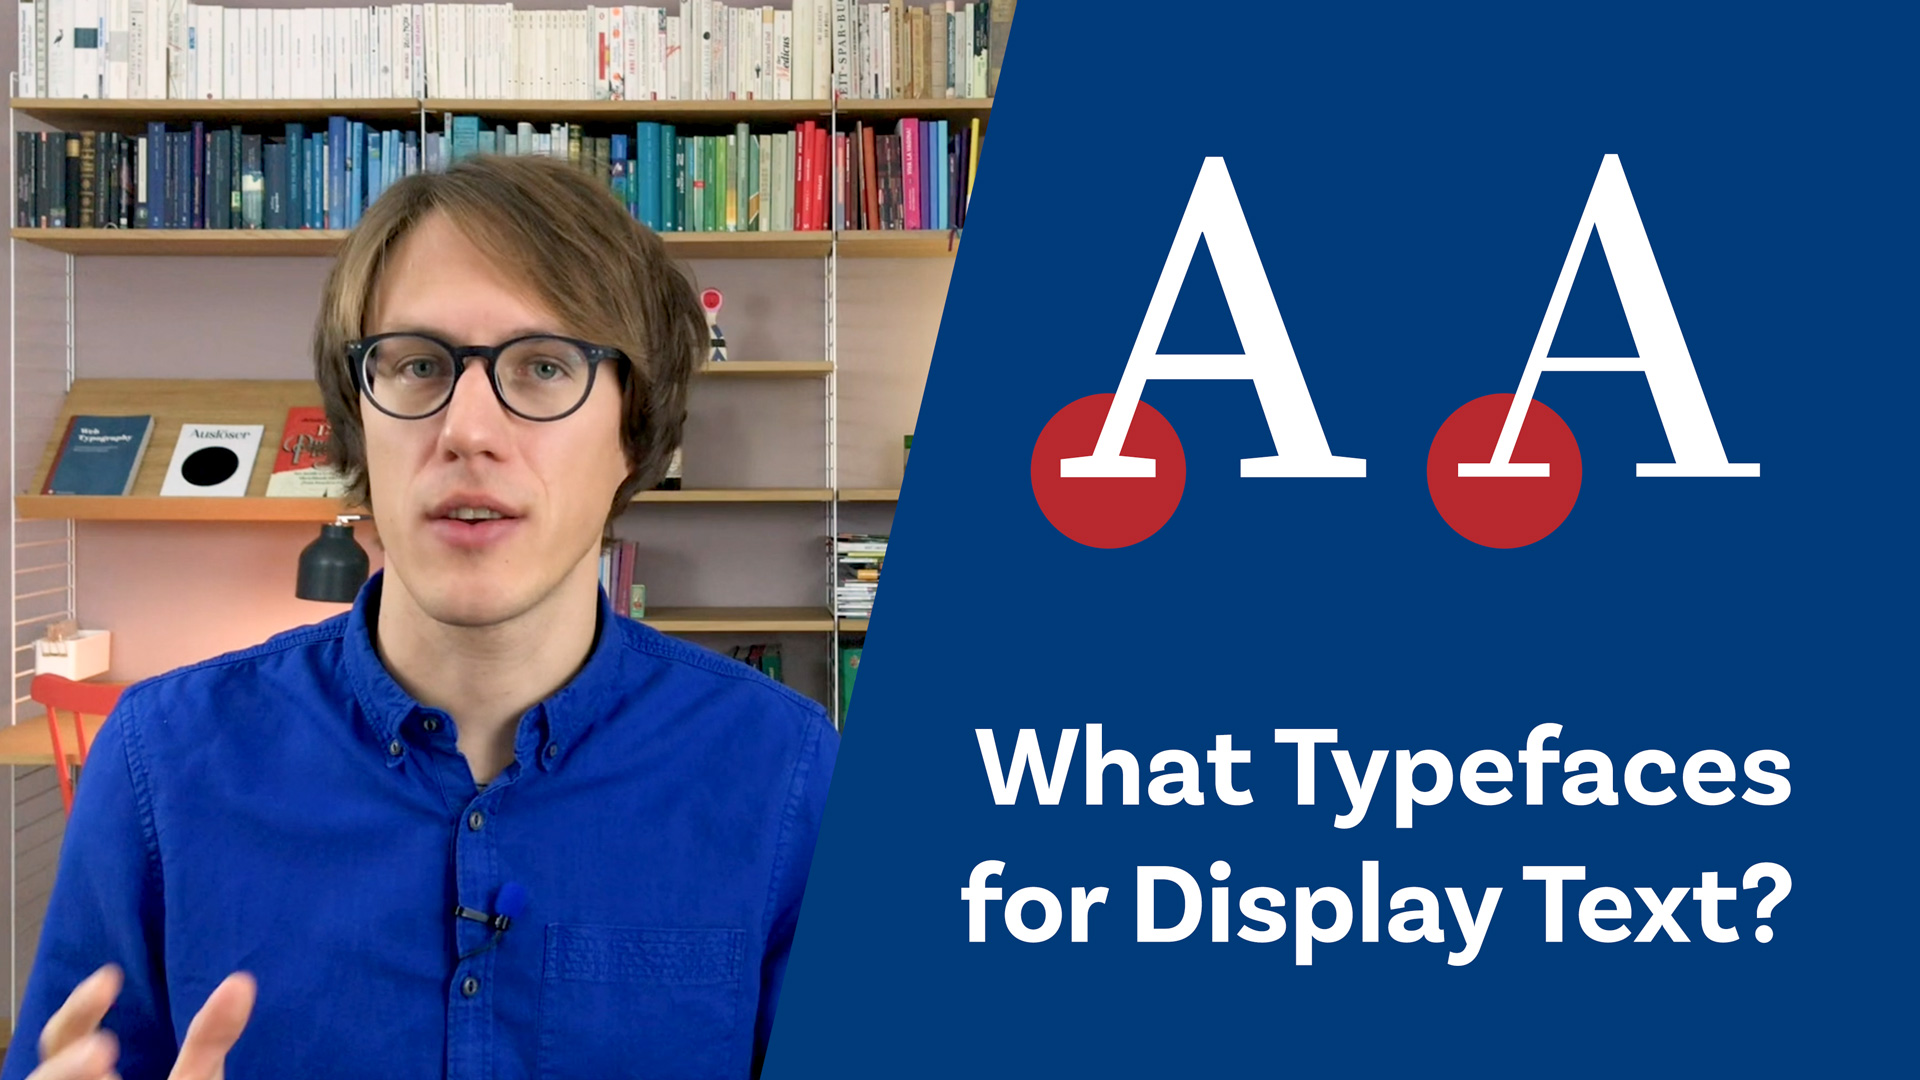 What Typefaces for Display Text?